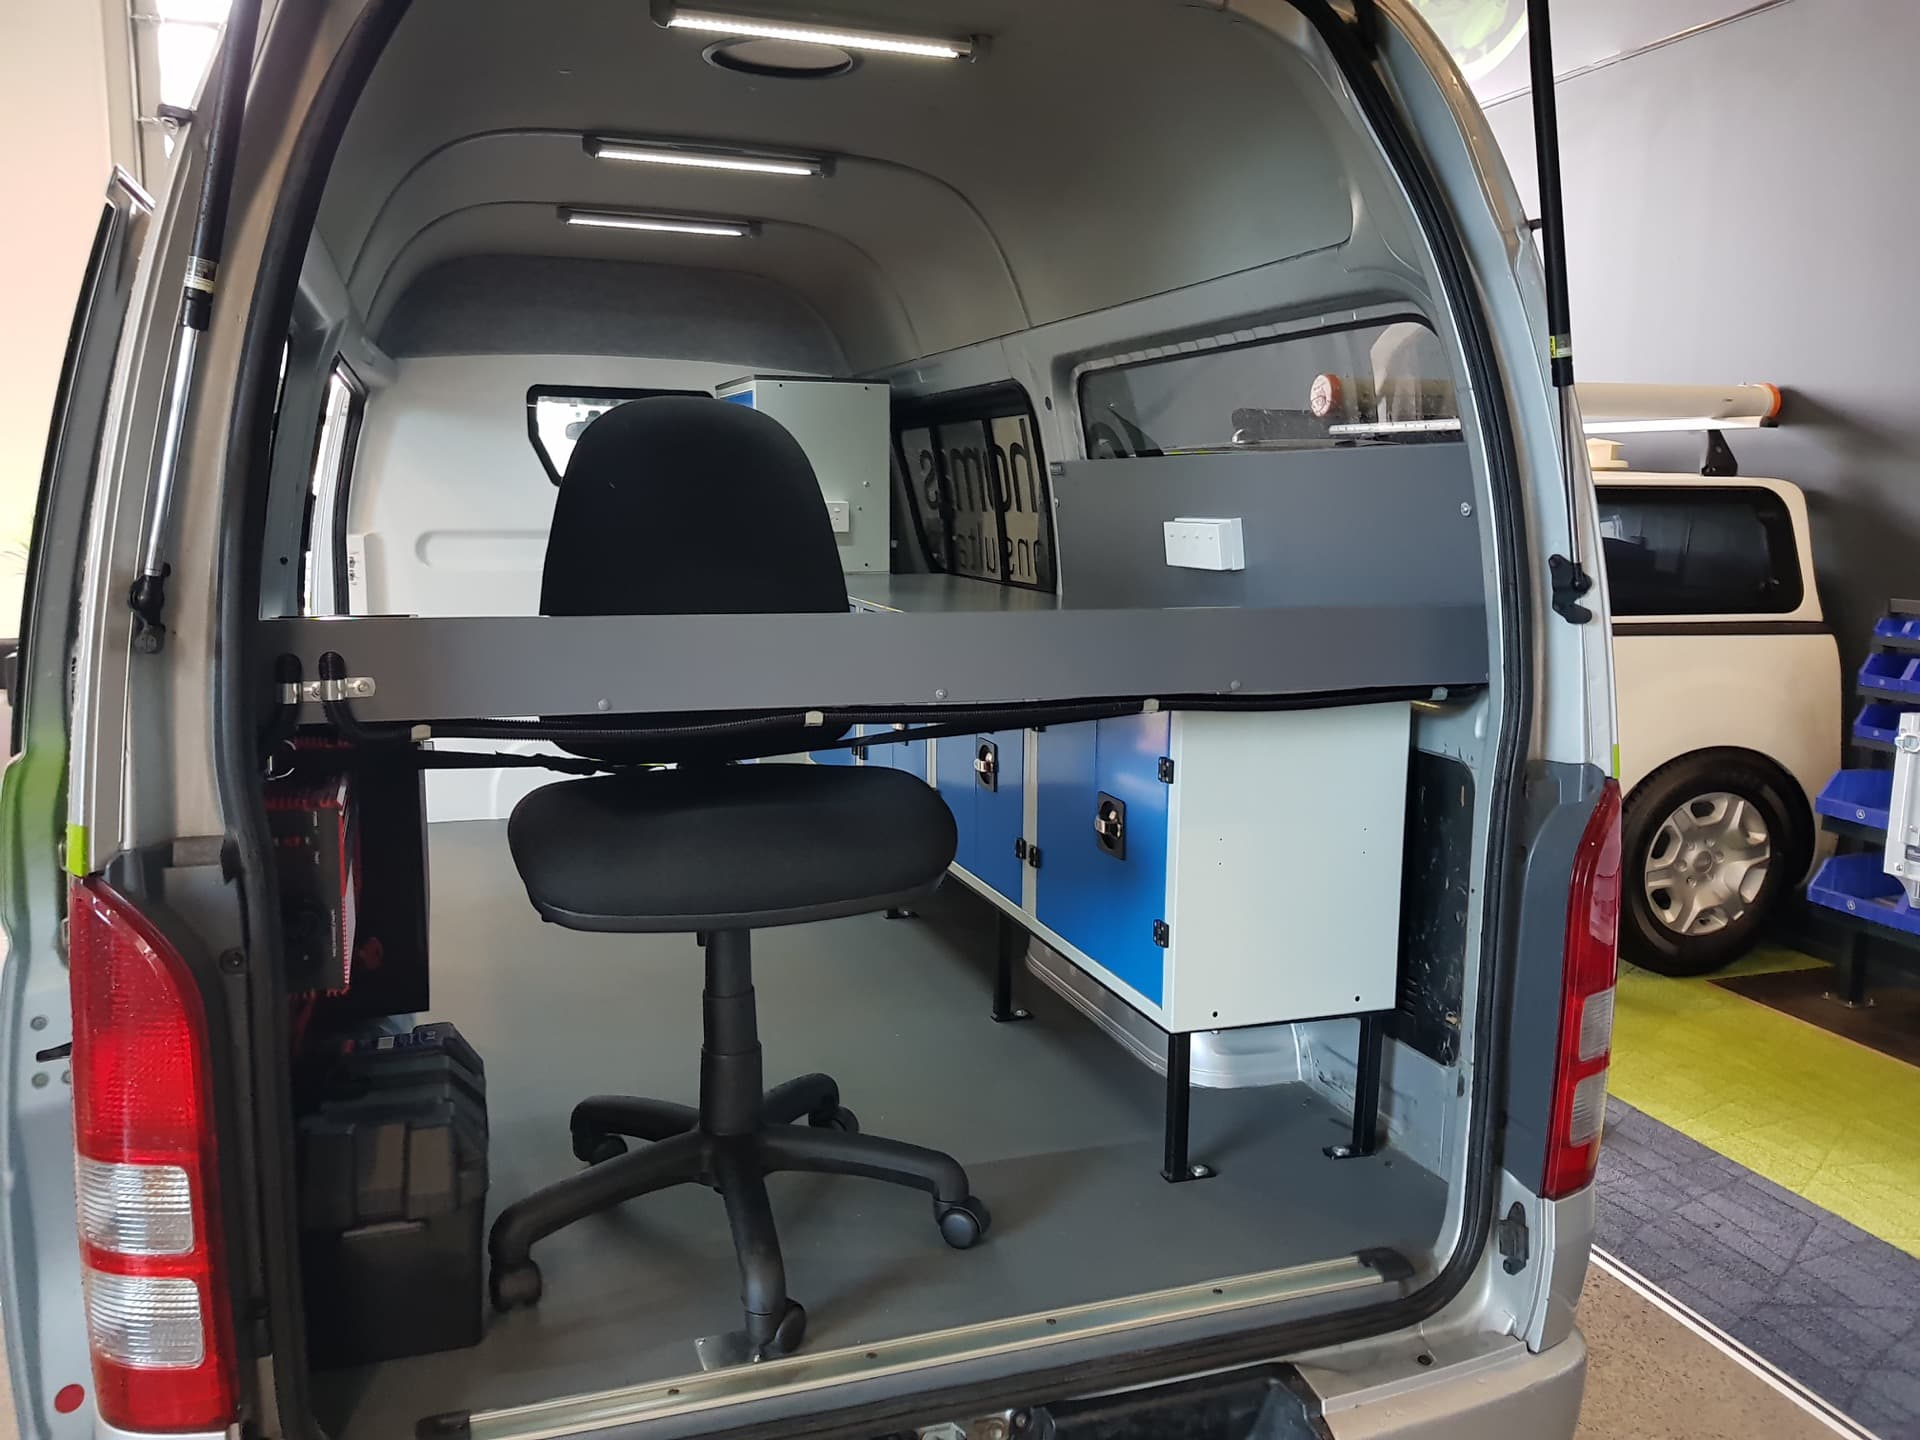 Commercial van fitout with chair and desk setup